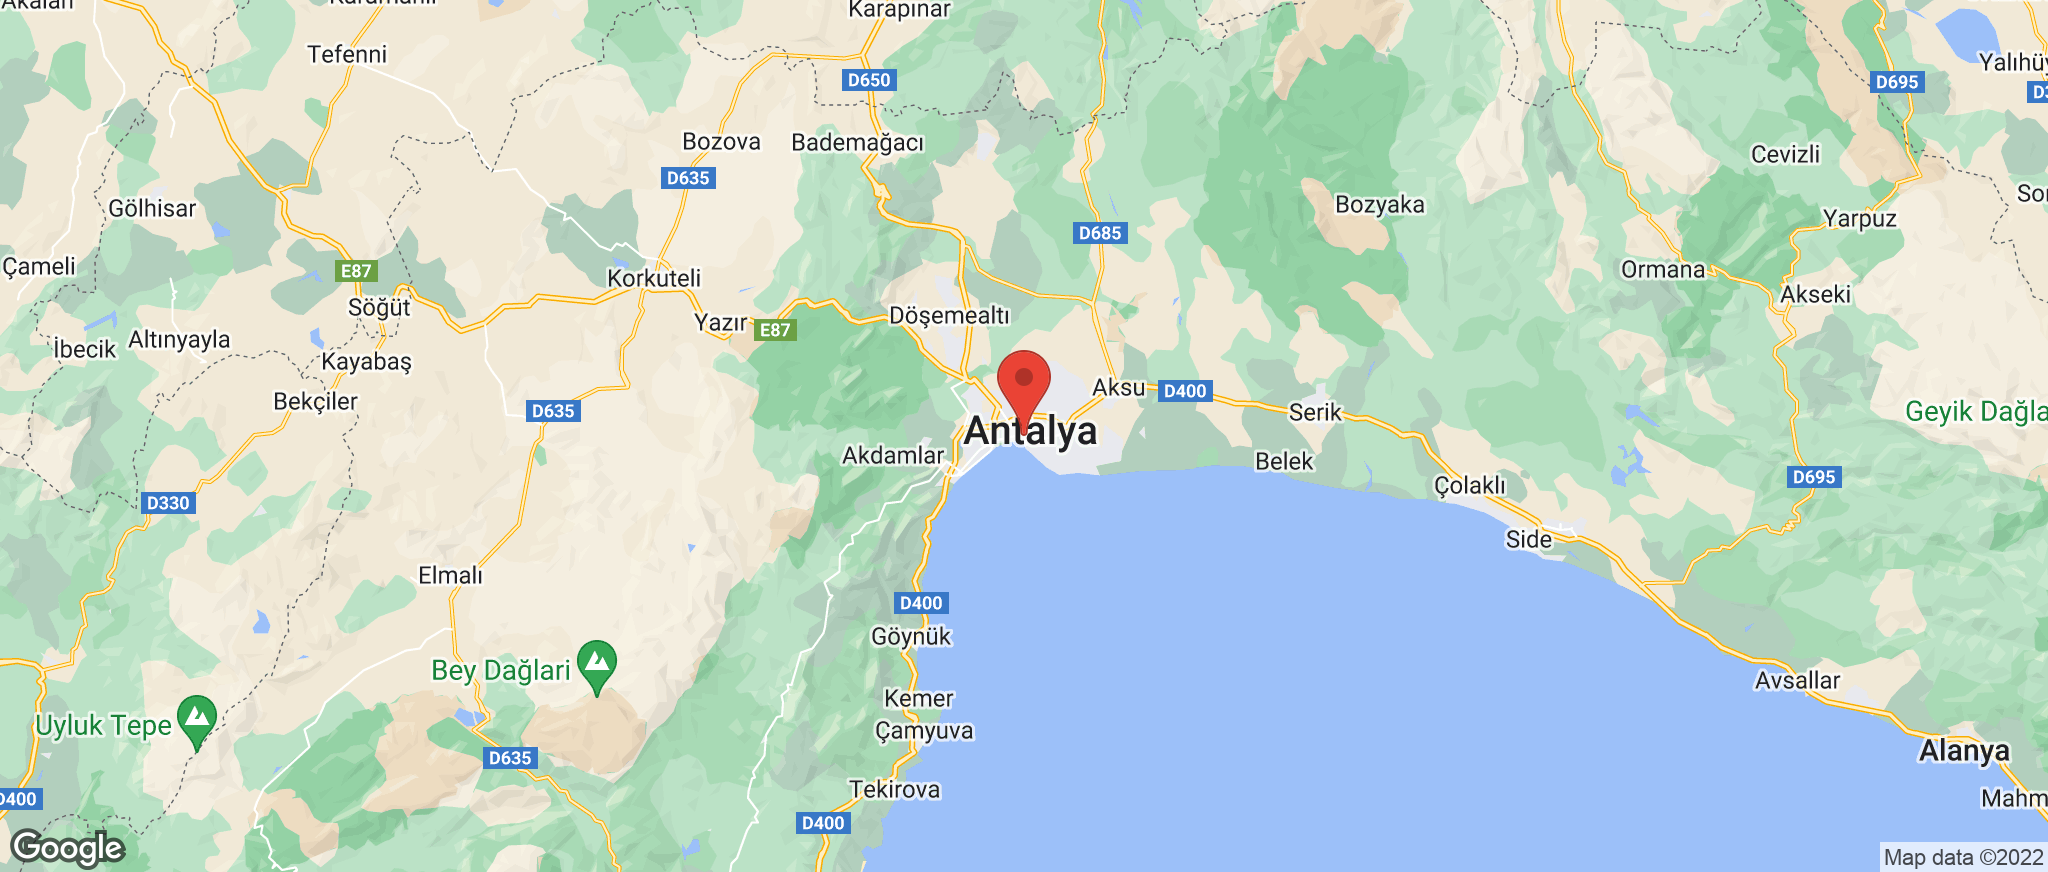 Map showing the location of Antalya